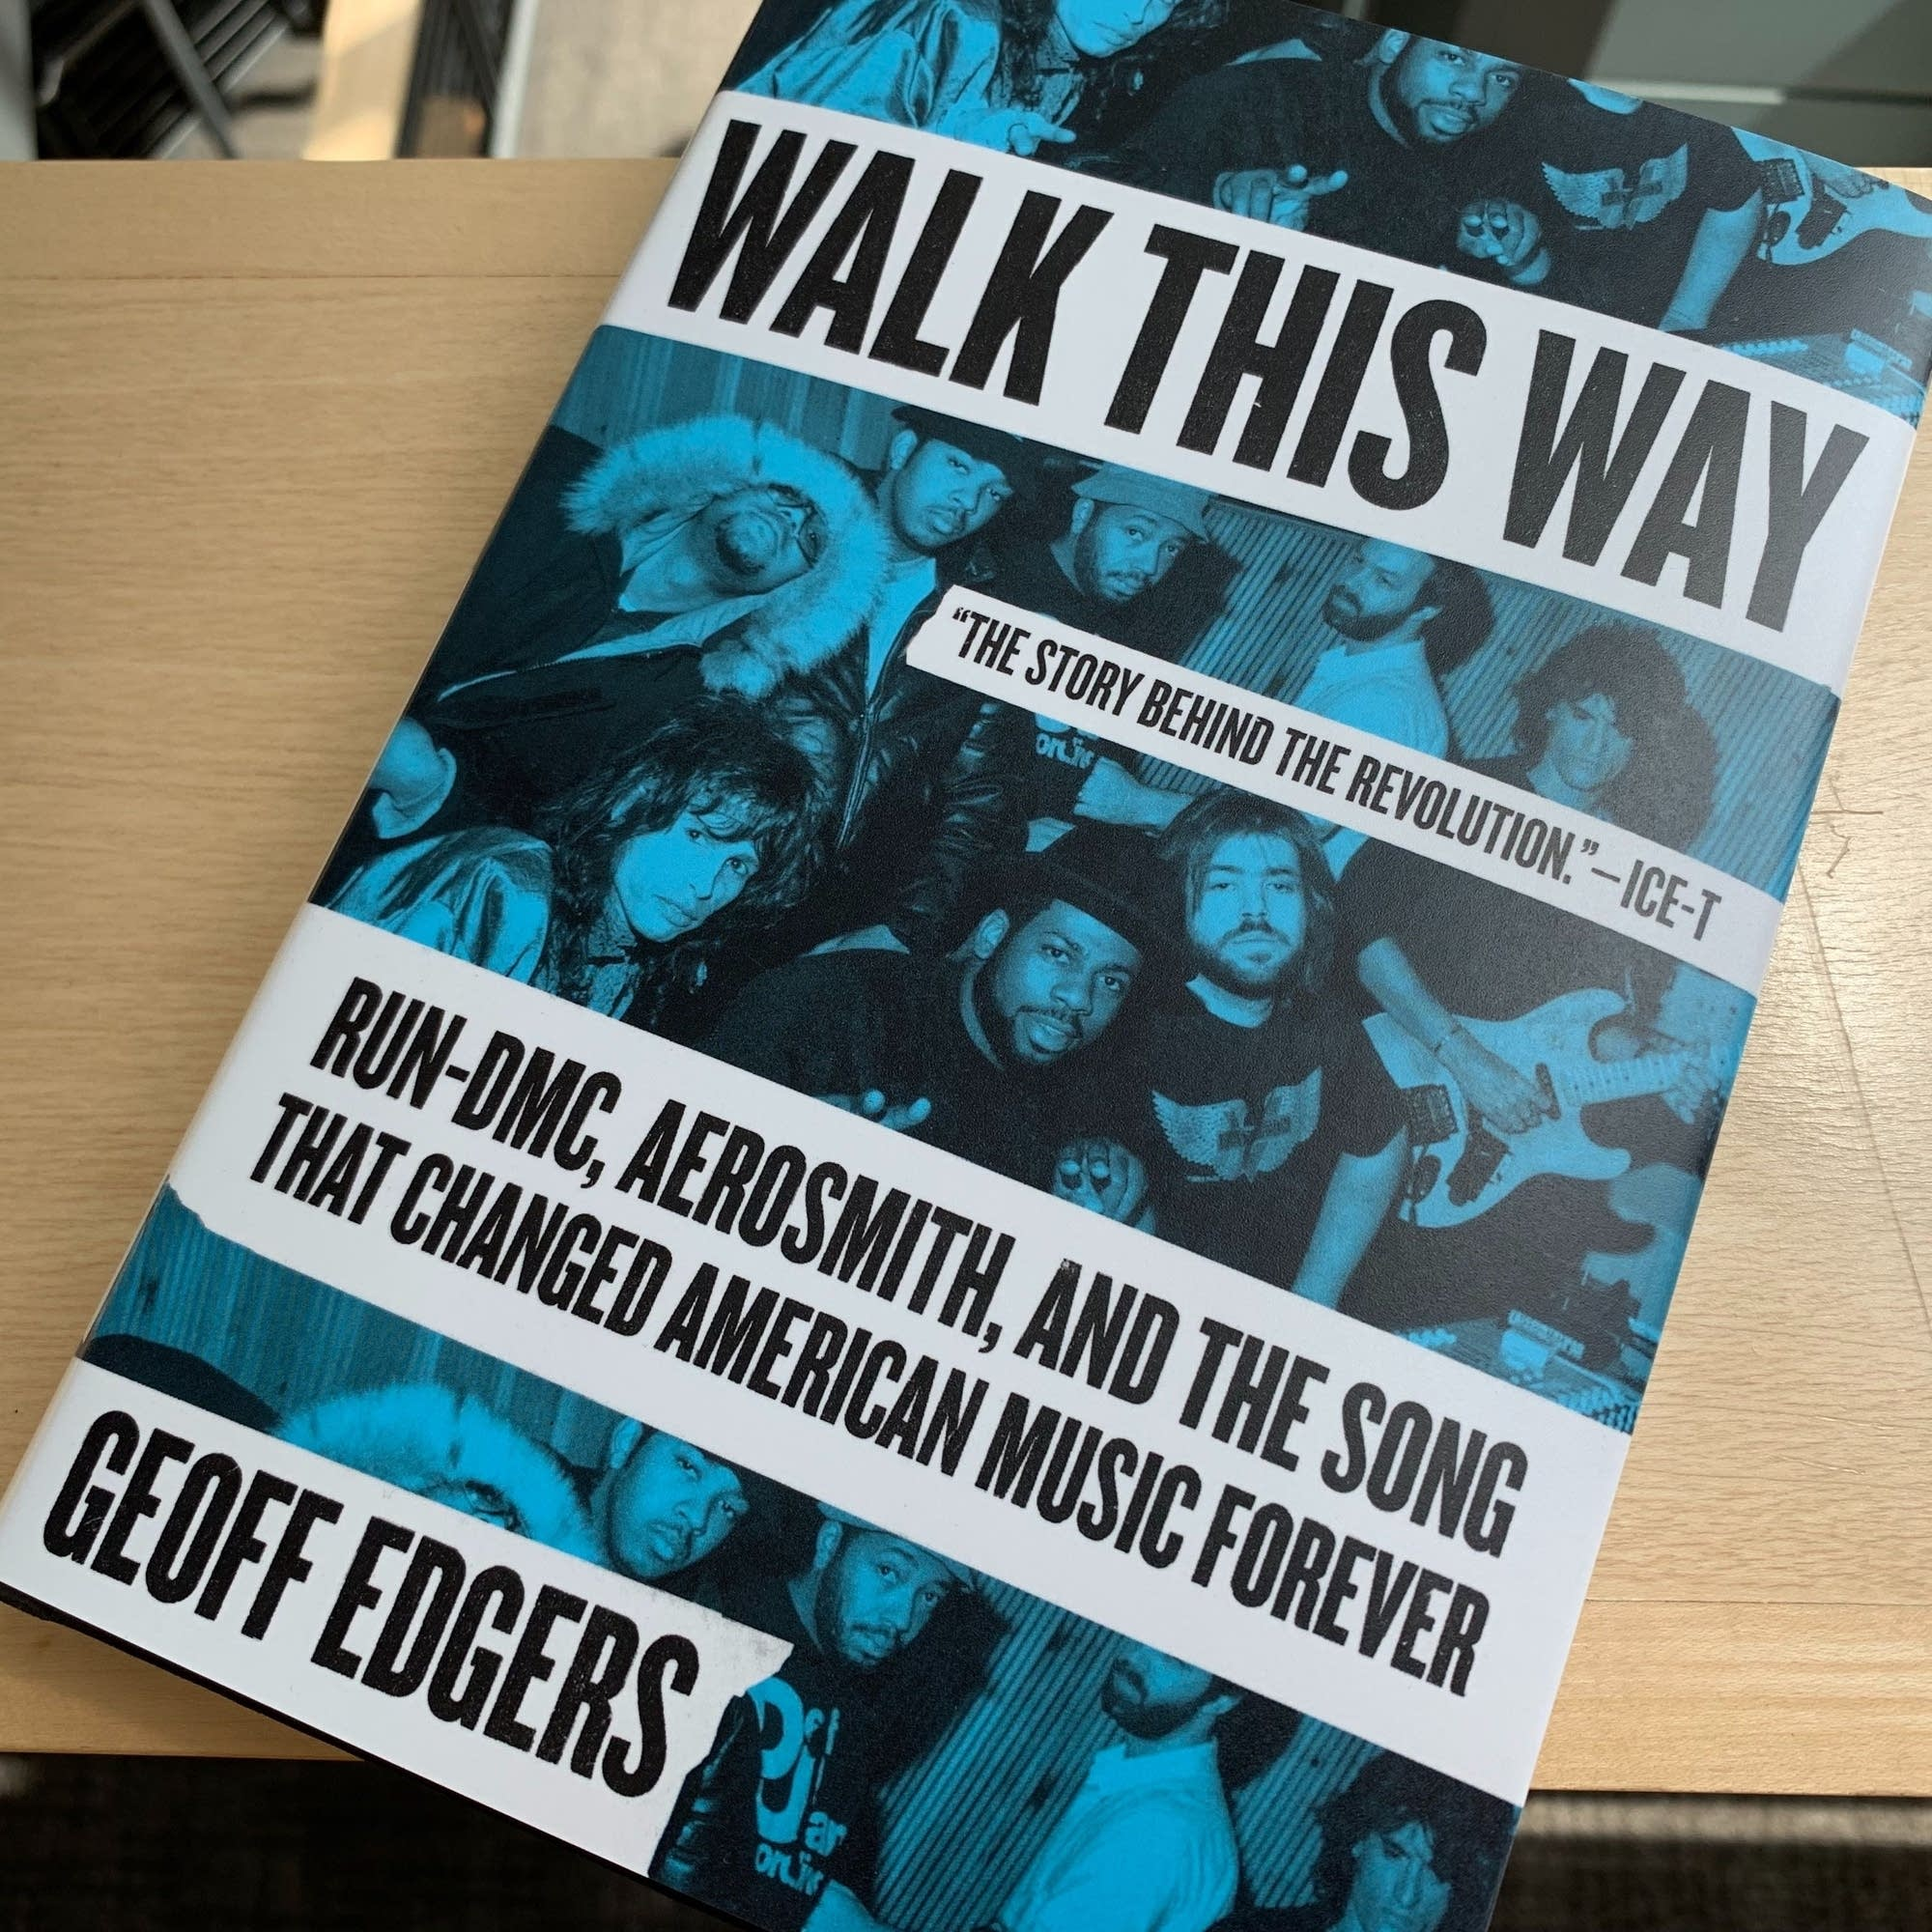 Geoff Edgers's 'Walk This Way.'